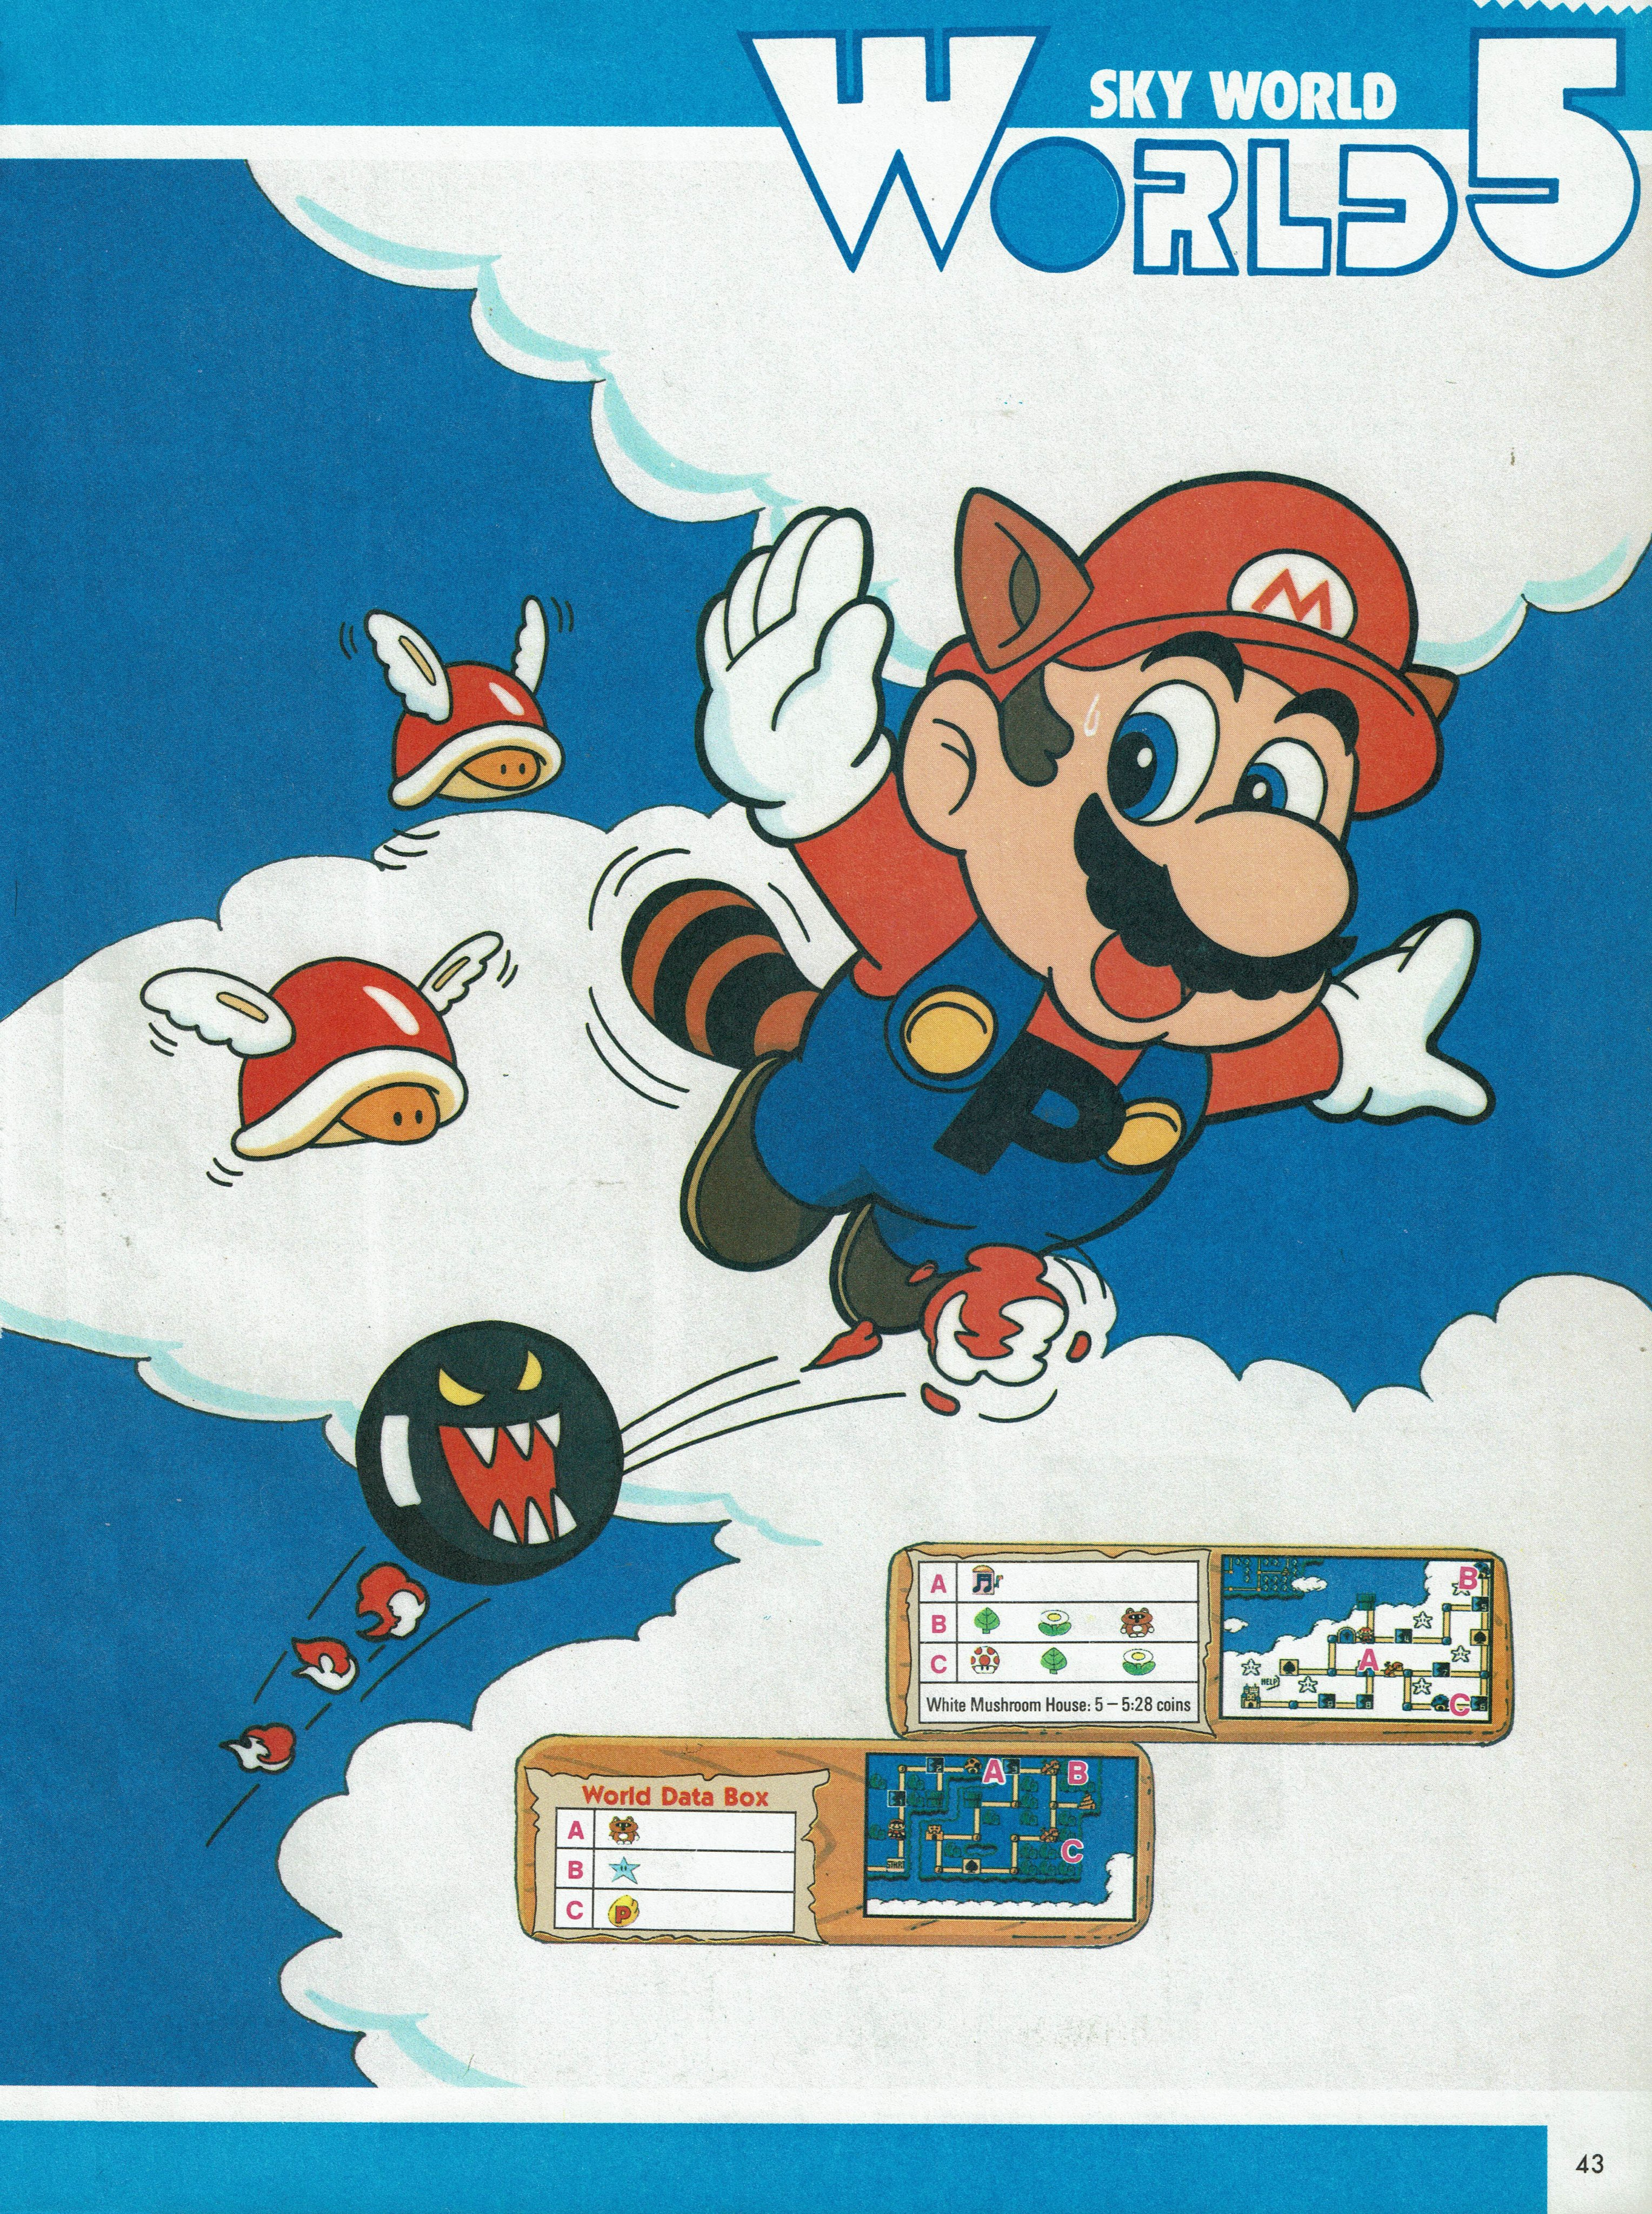 http://www.mariowiki.com/images/0/05/Sky_Land.jpg